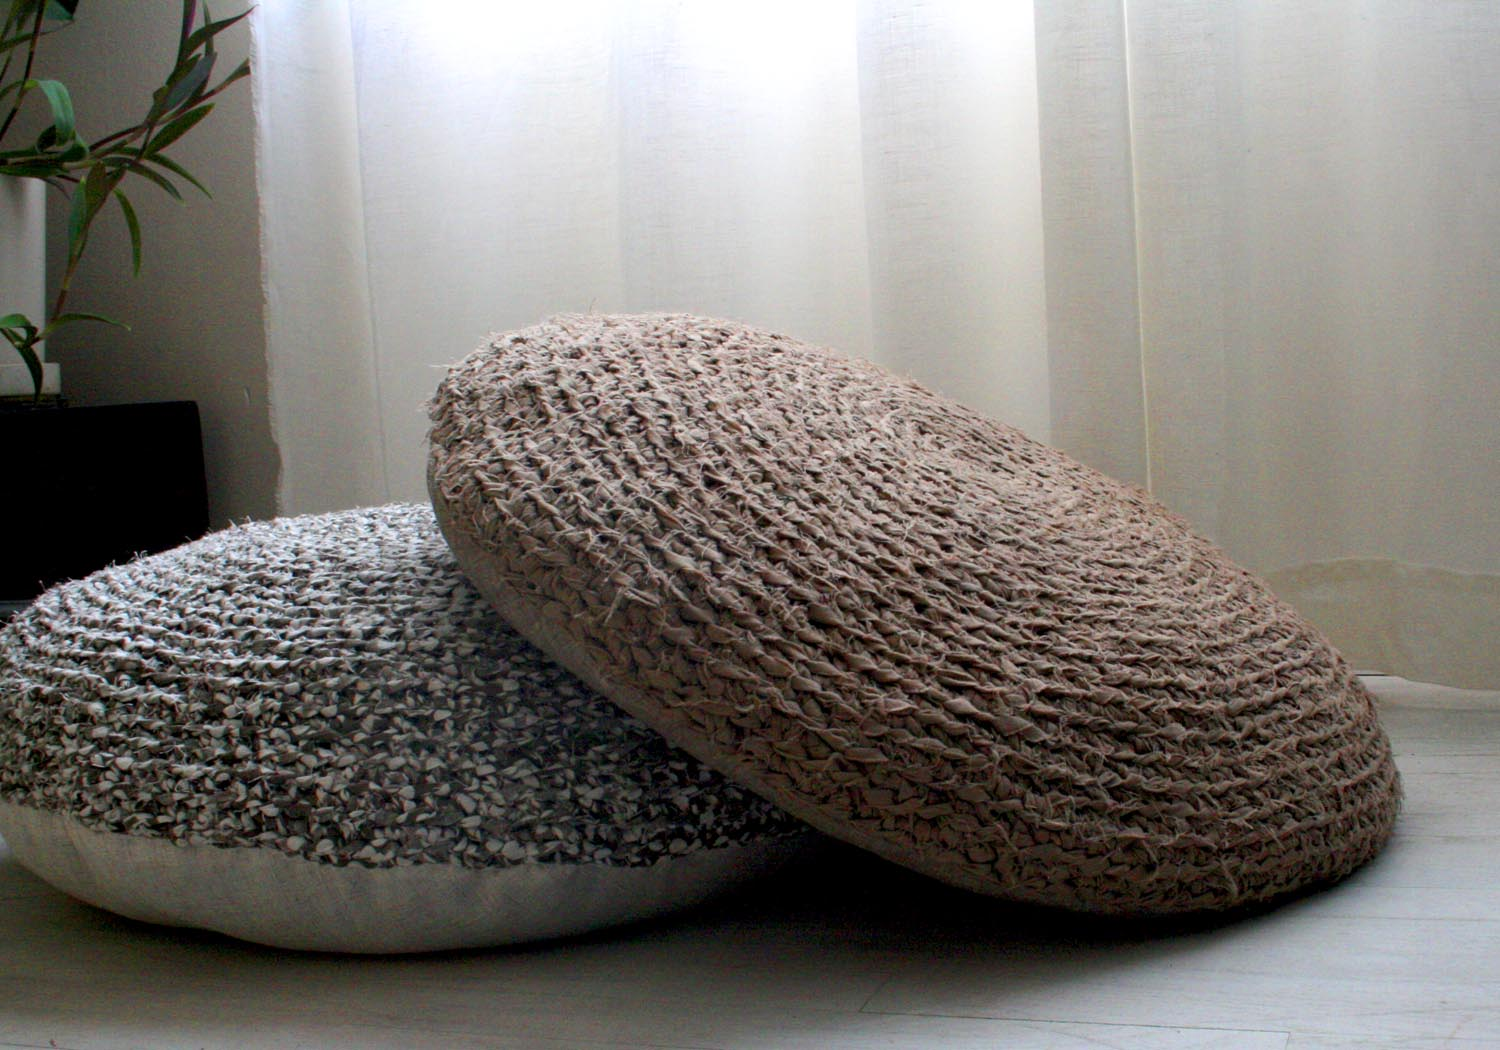 diy floor pillows. Old Bed Linens Become Rag Floor Pillows  Crafting A Green World